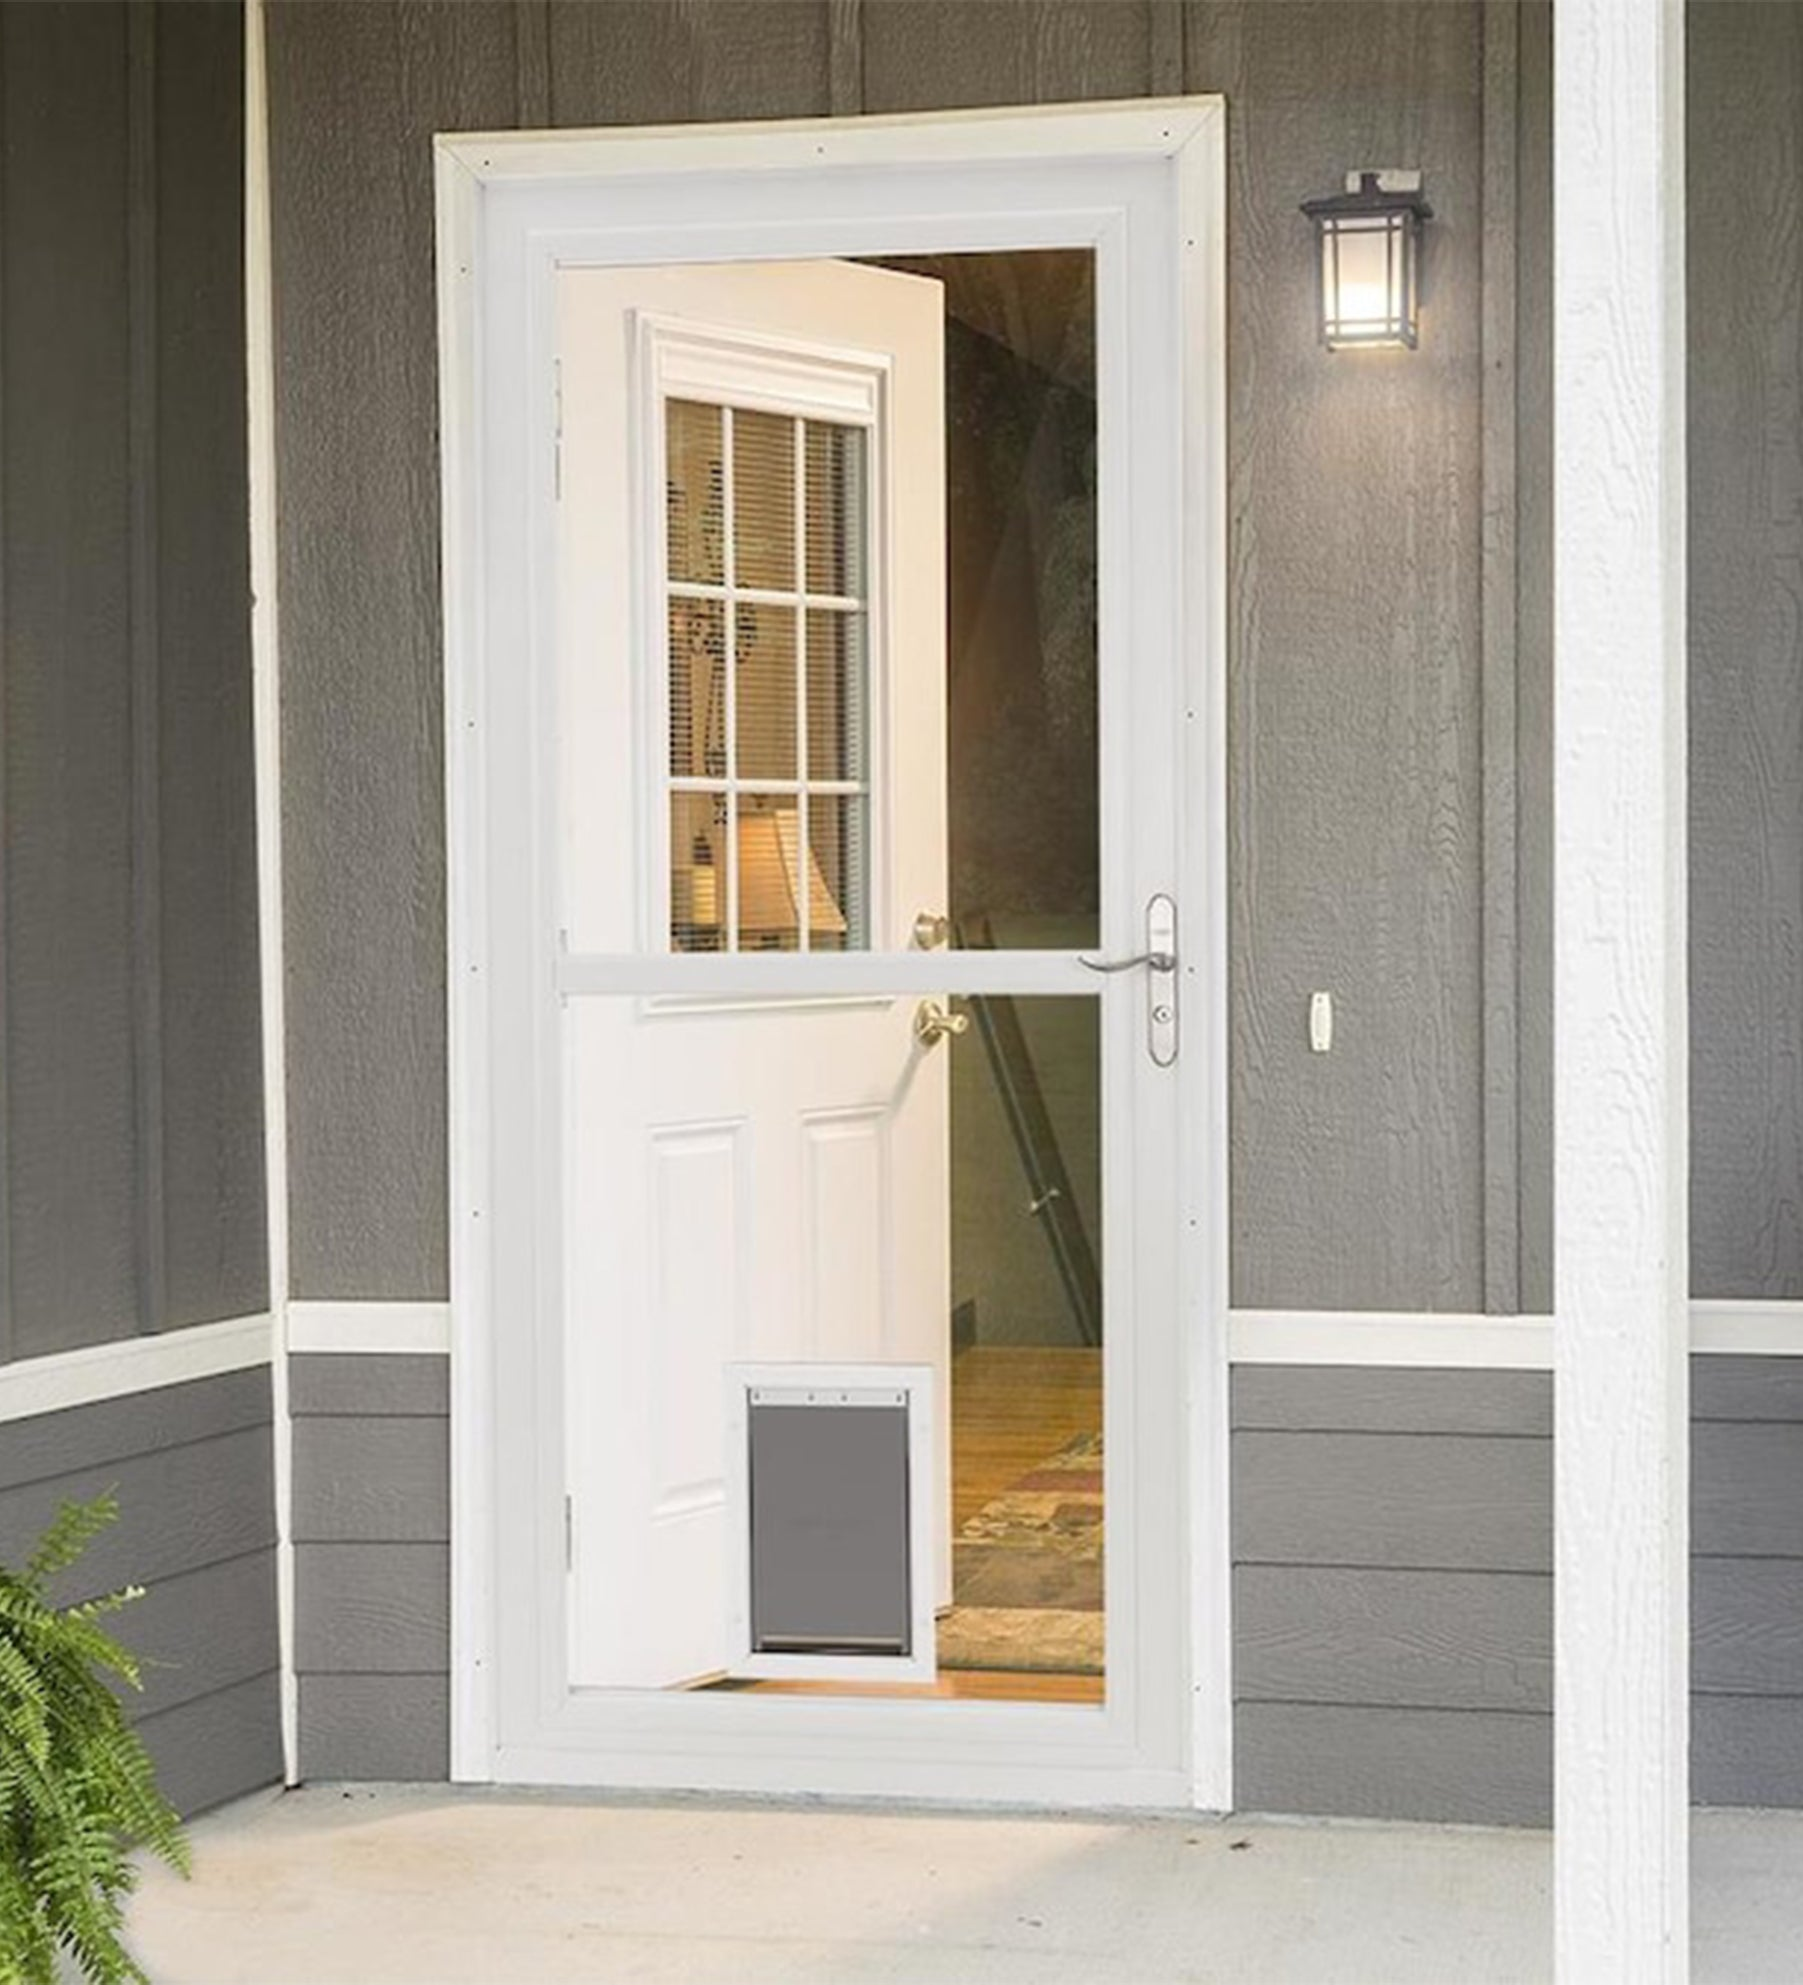 INSTALLED Larson Easy Vent Pet Door Storm Door w/ Hardware STARTING $841.99